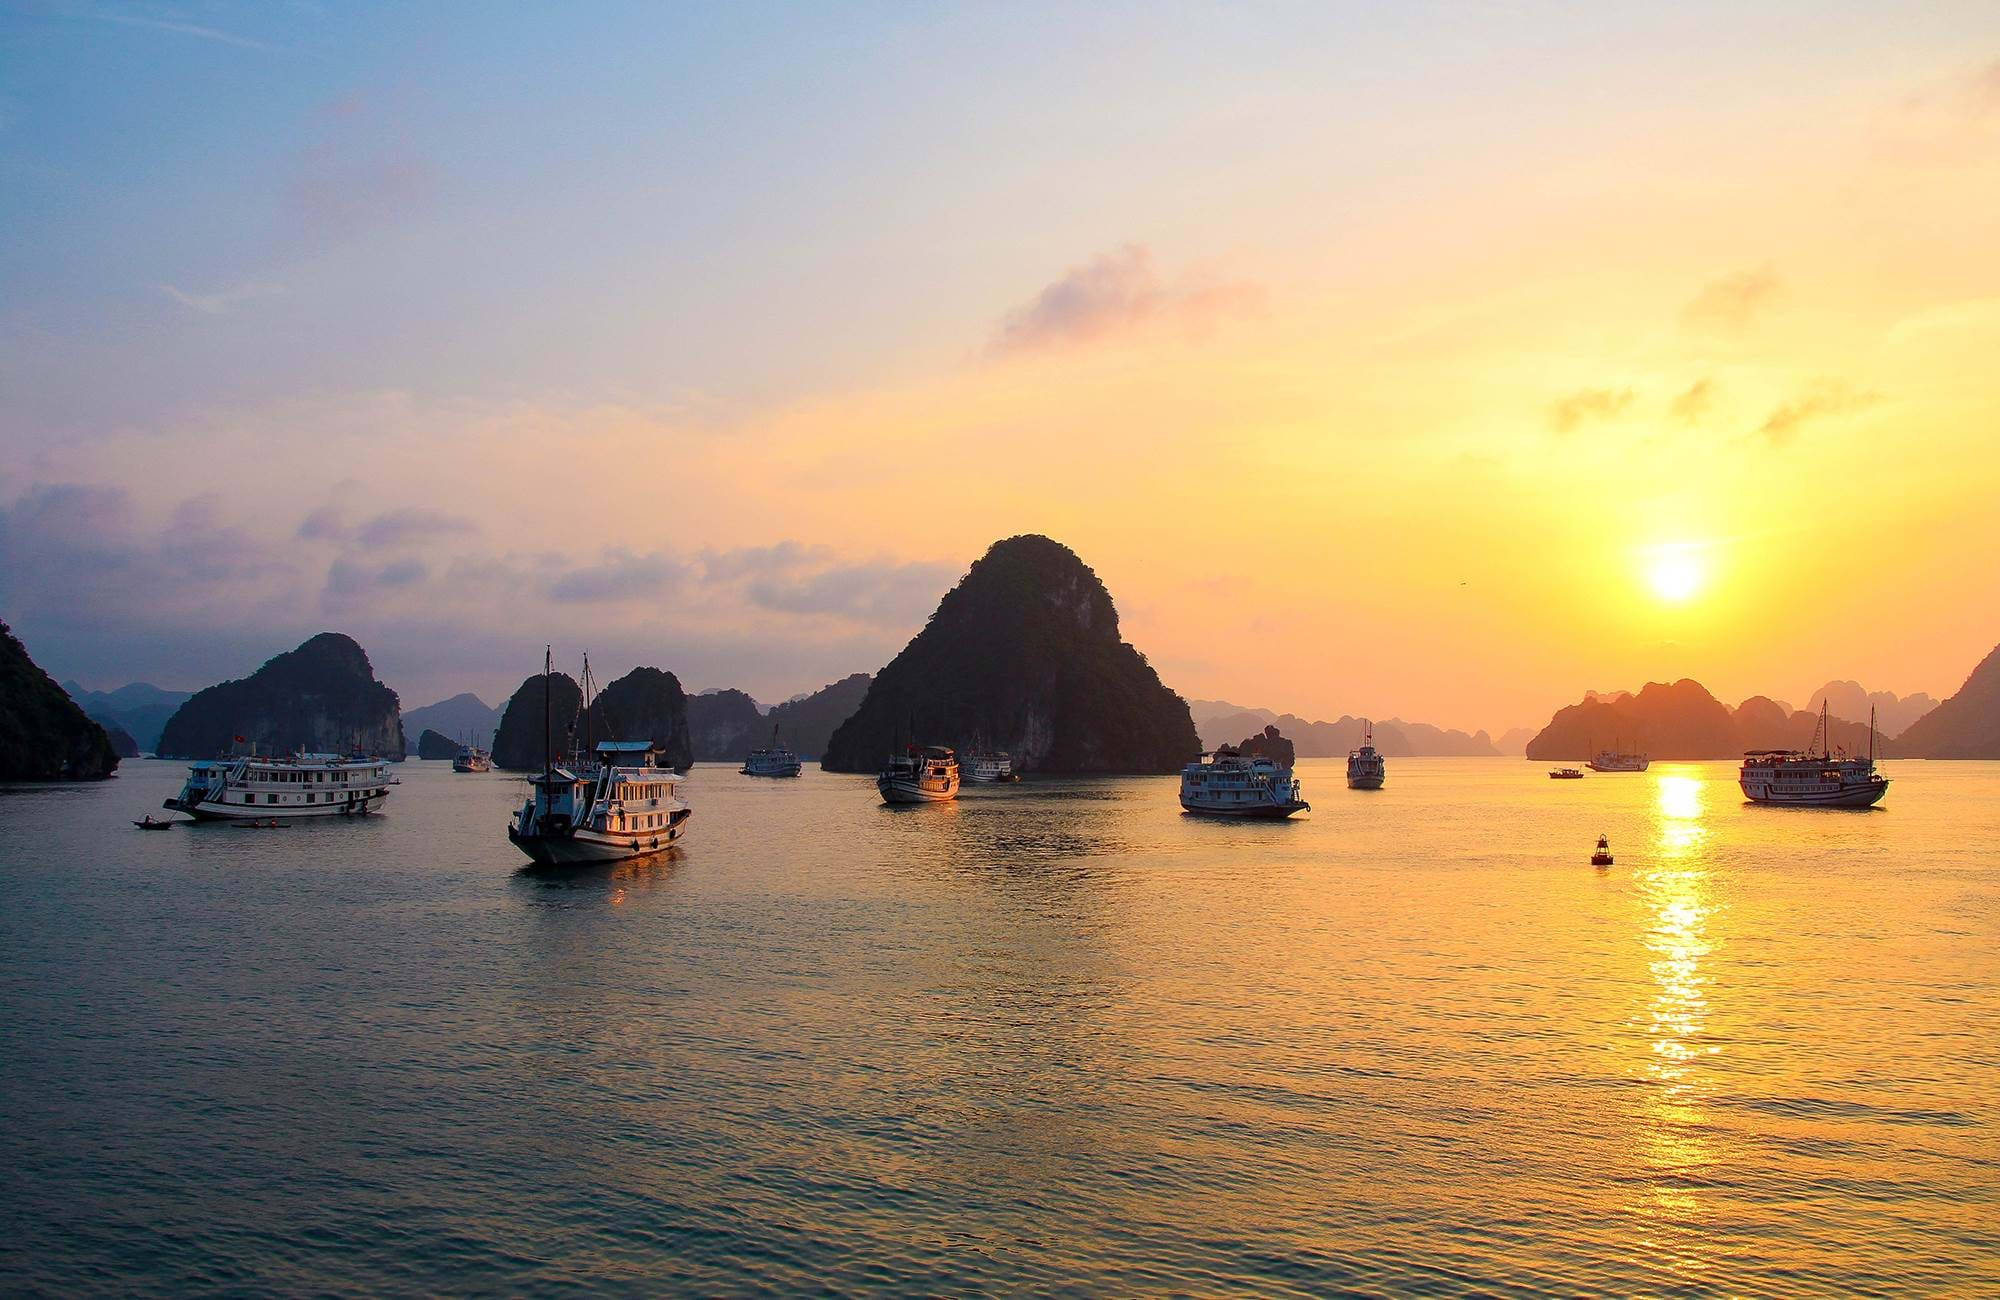 halong-bay-vietnam-sunset-boats